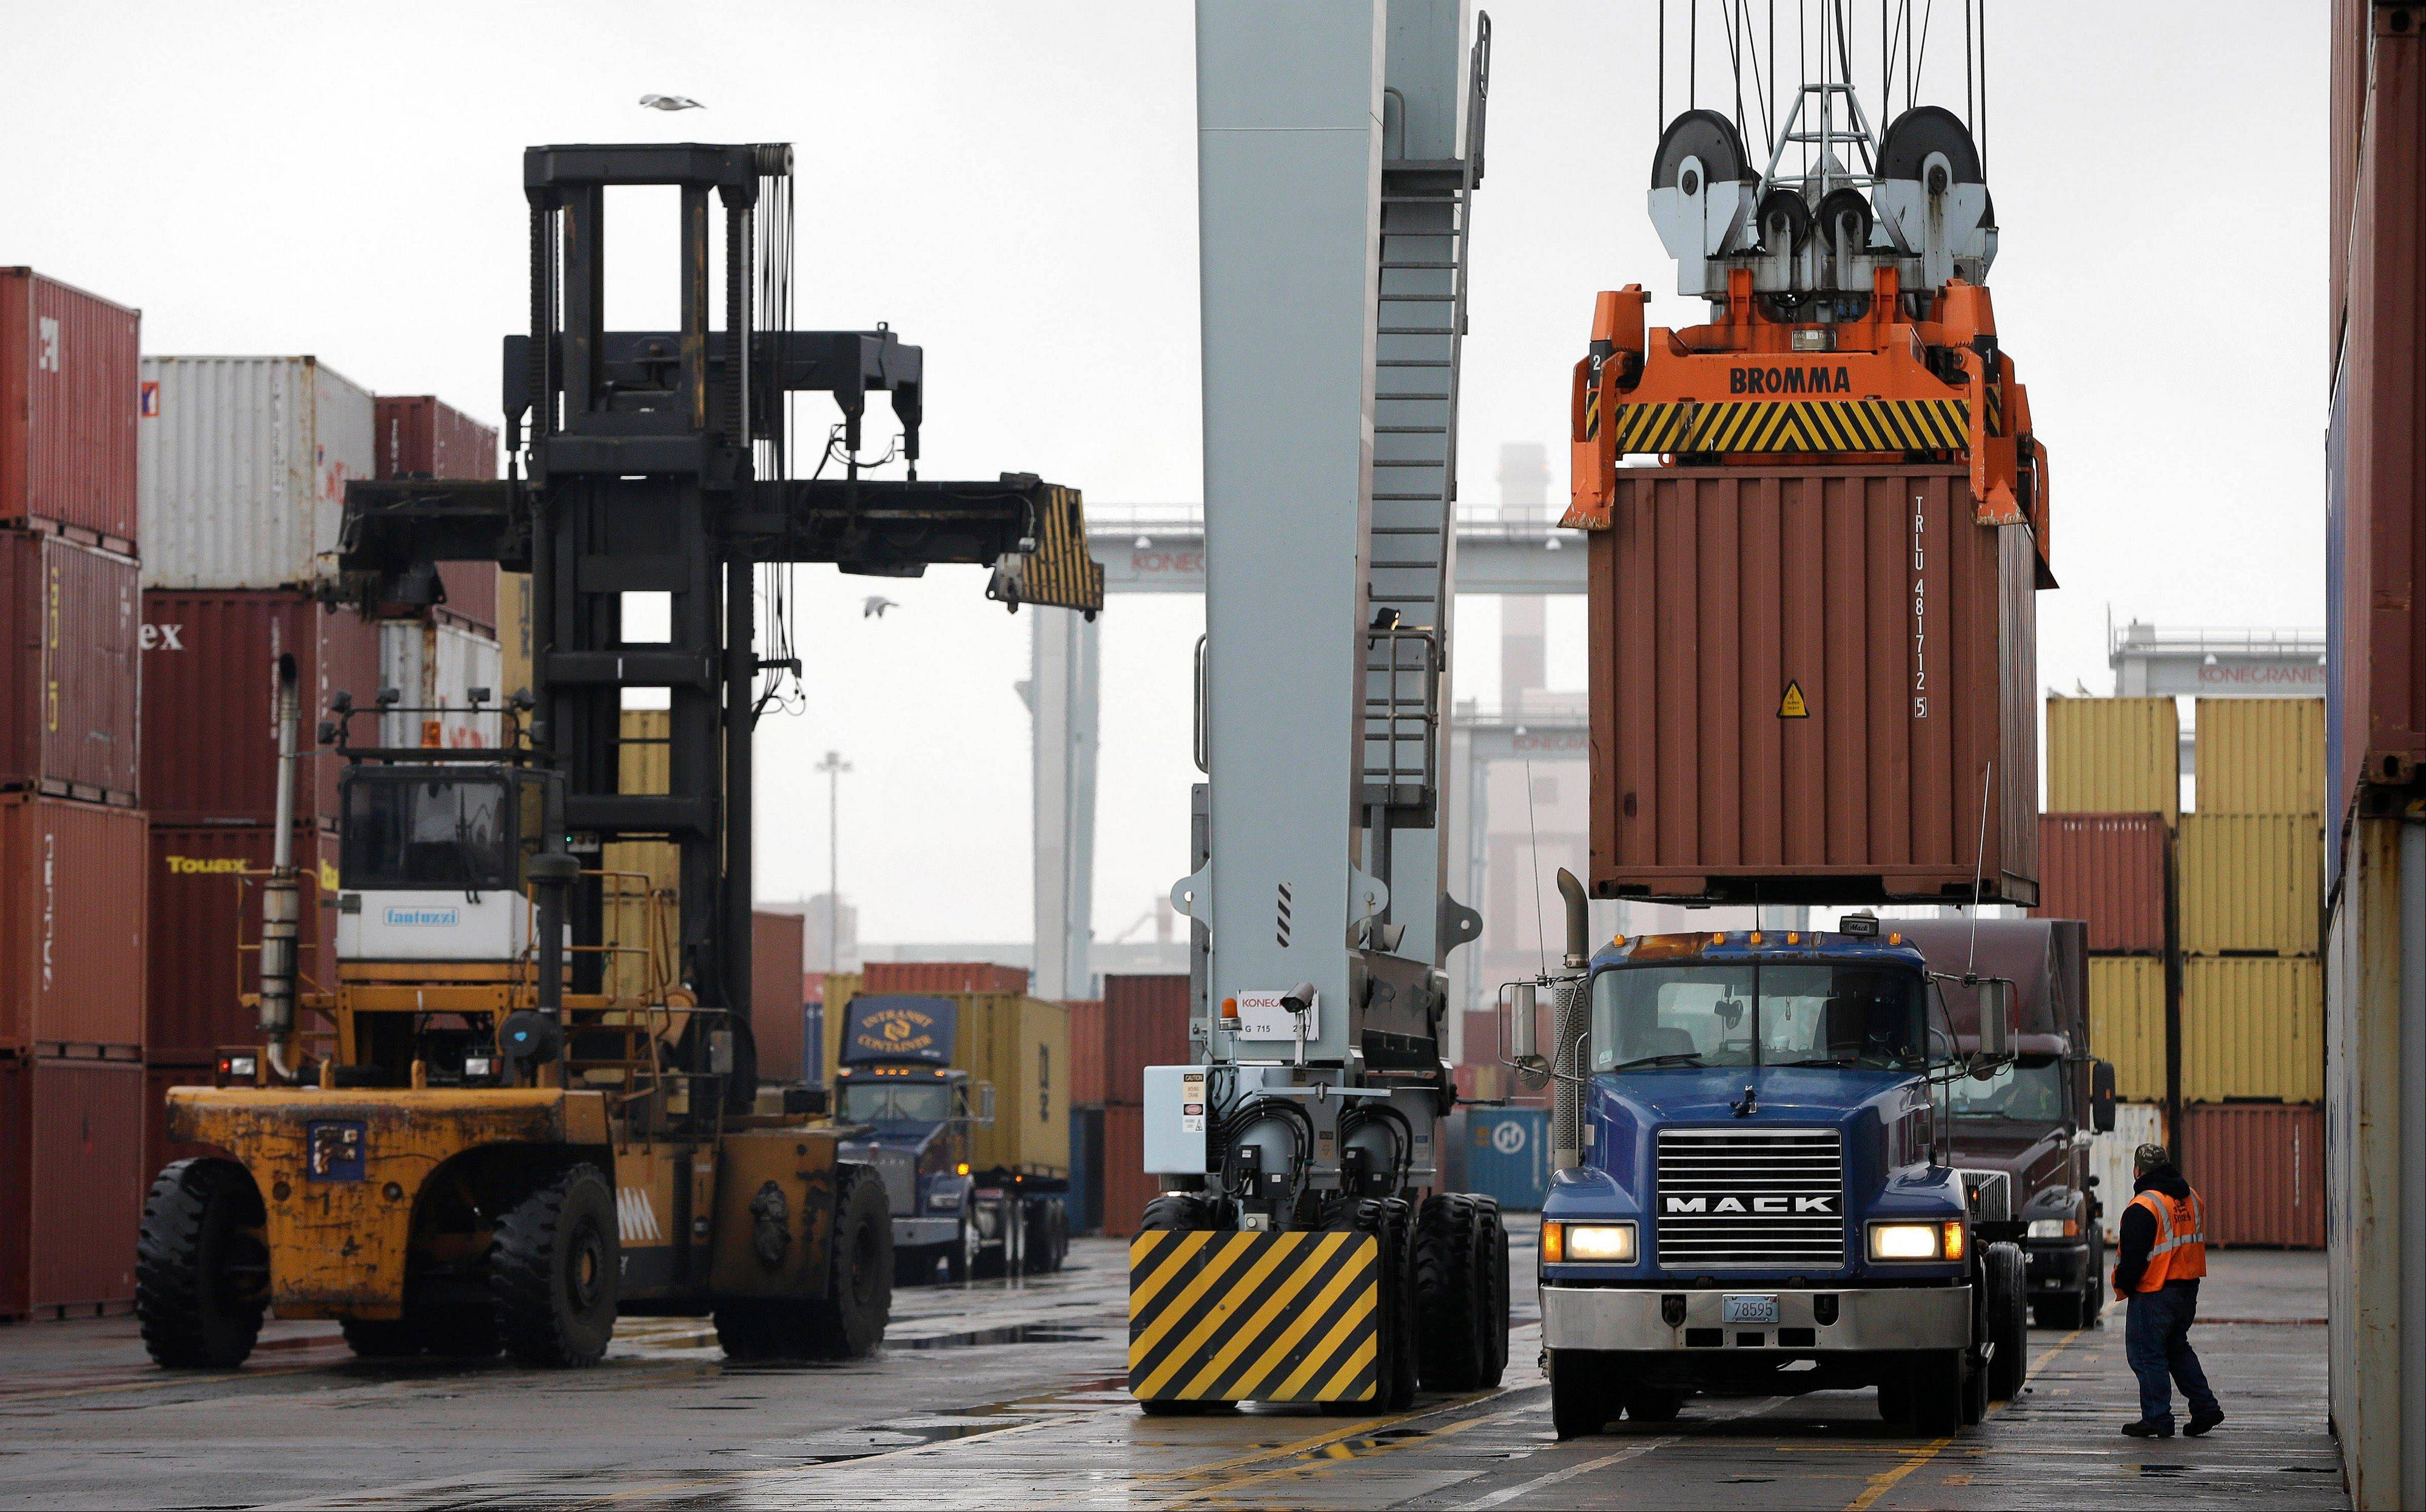 A truck driver watches as a freight container, right, is lowered onto a tractor trailer by a container crane at the Port of Boston in Boston. The crane and a reach stacker, left, are operated by longshoremen at the port.